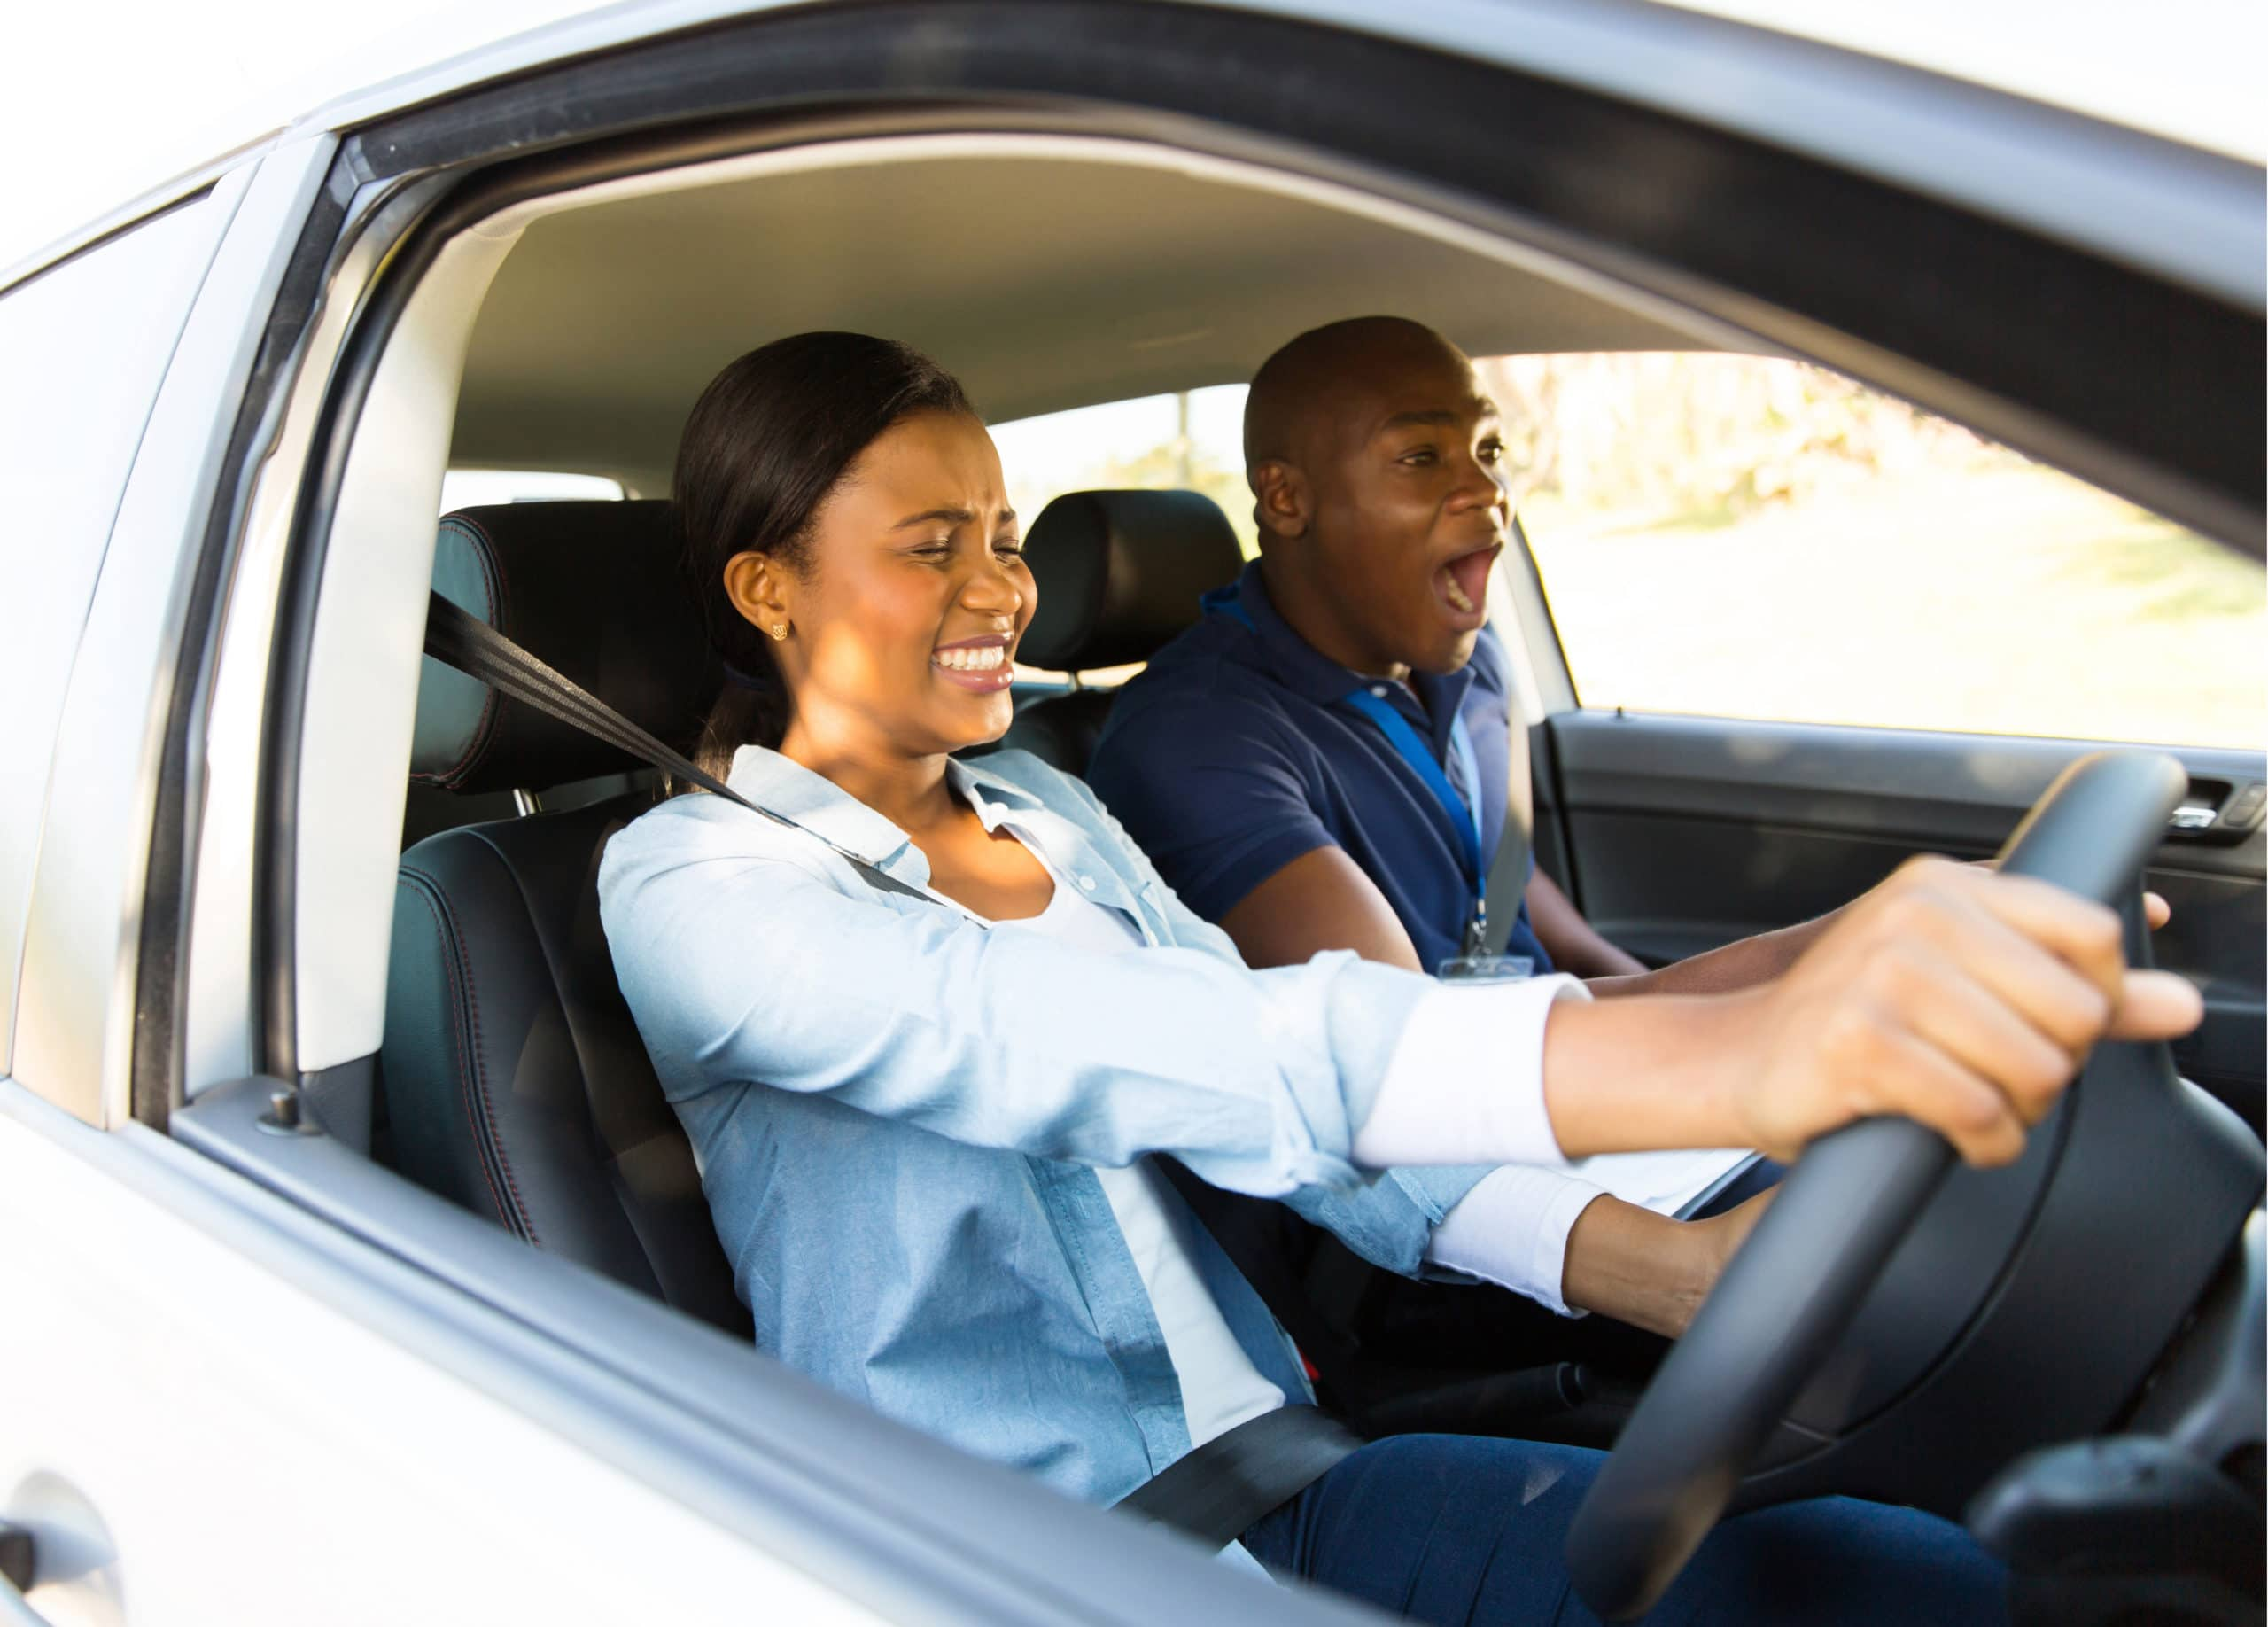 First Time Car Insurance: How to Get Cheap Car Insurance in 2020